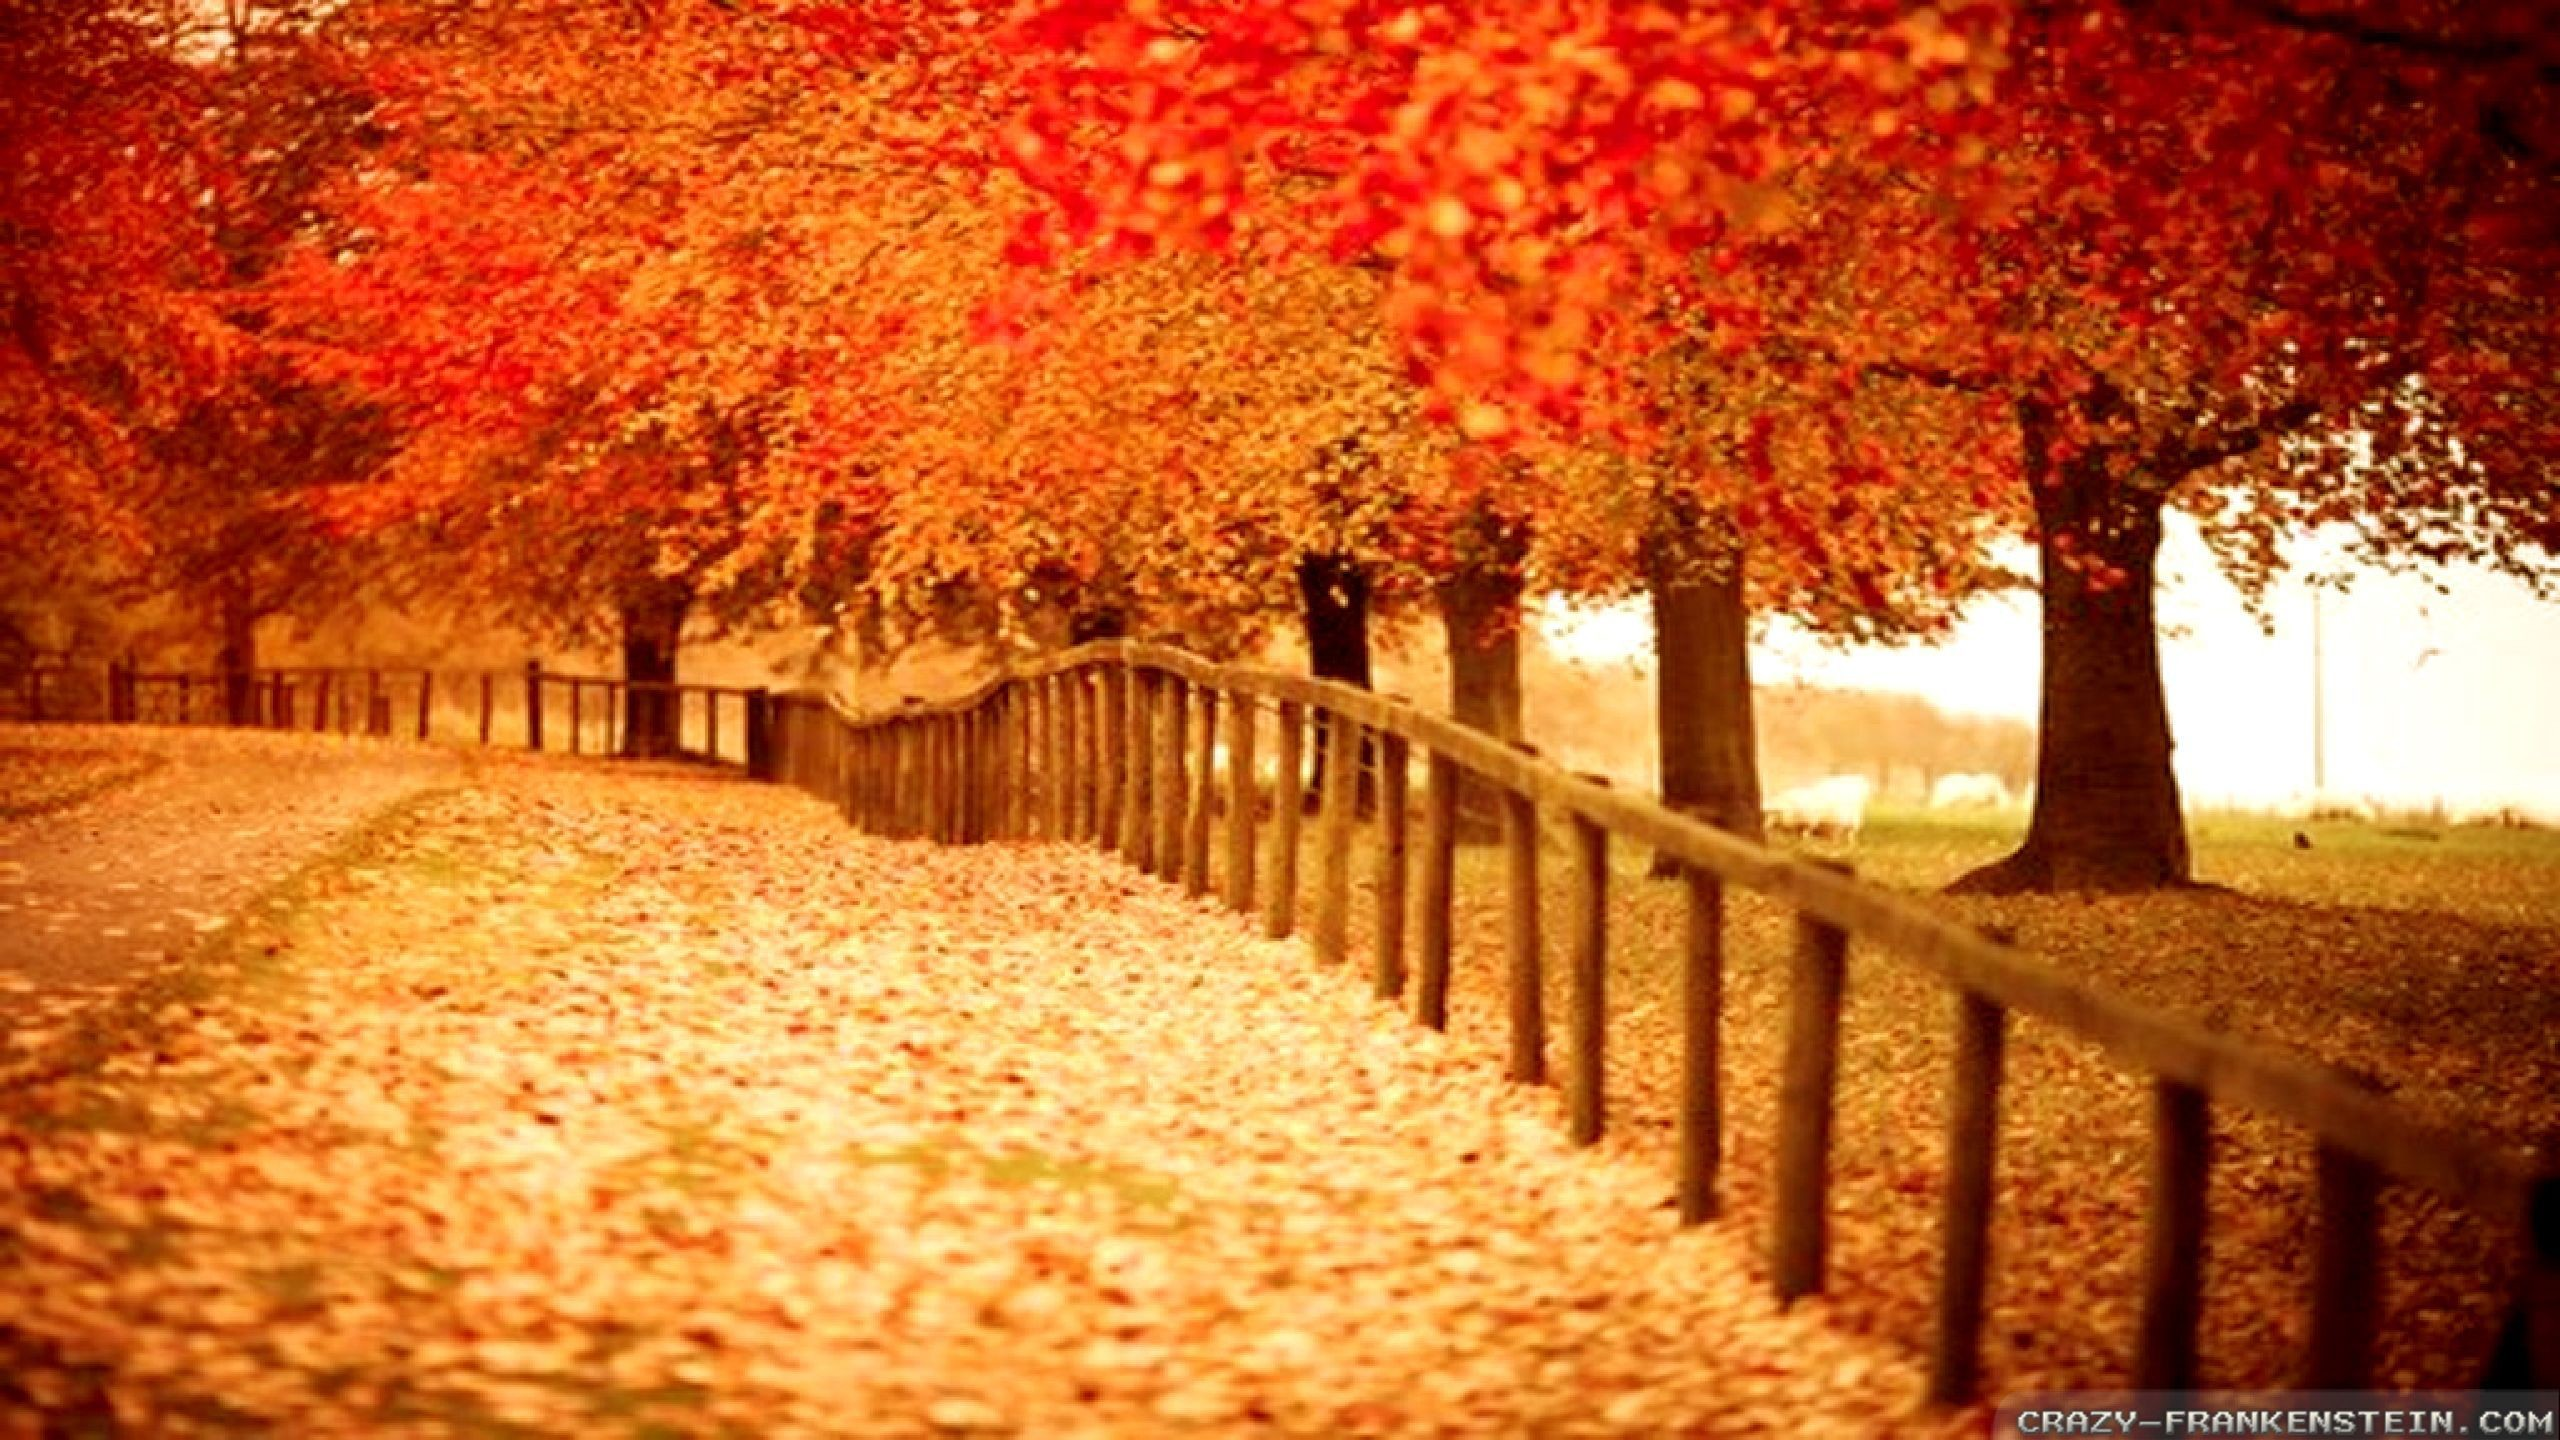 2560x1440 Fall Foliage Desktop Wallpaper 1280×1024 Fall Themed Desktop Backgrounds  (38 Wallpapers) |